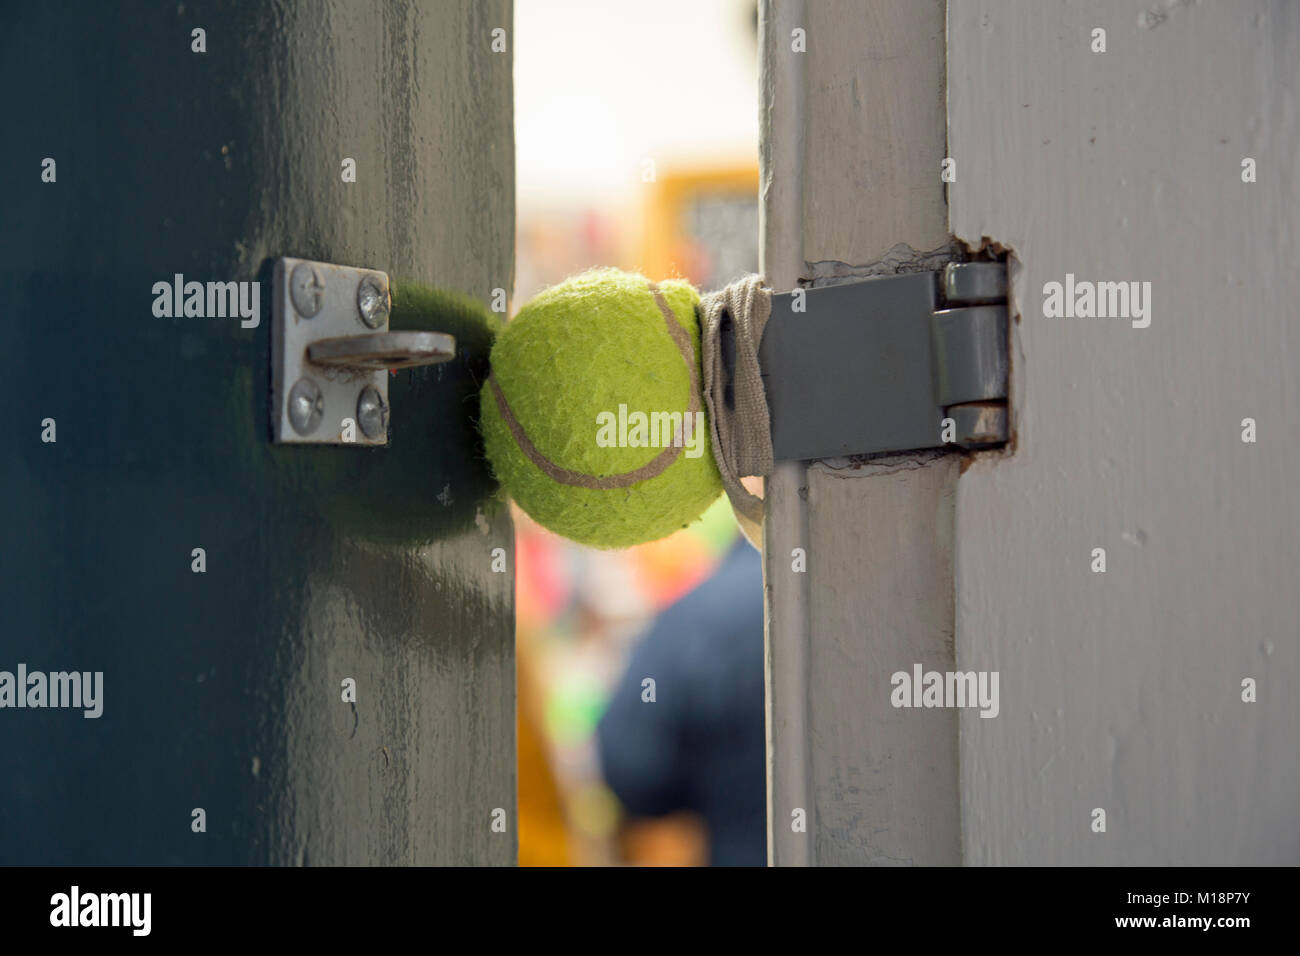 A close up of a tennis ball being used to stop a door banging shut - Stock Image